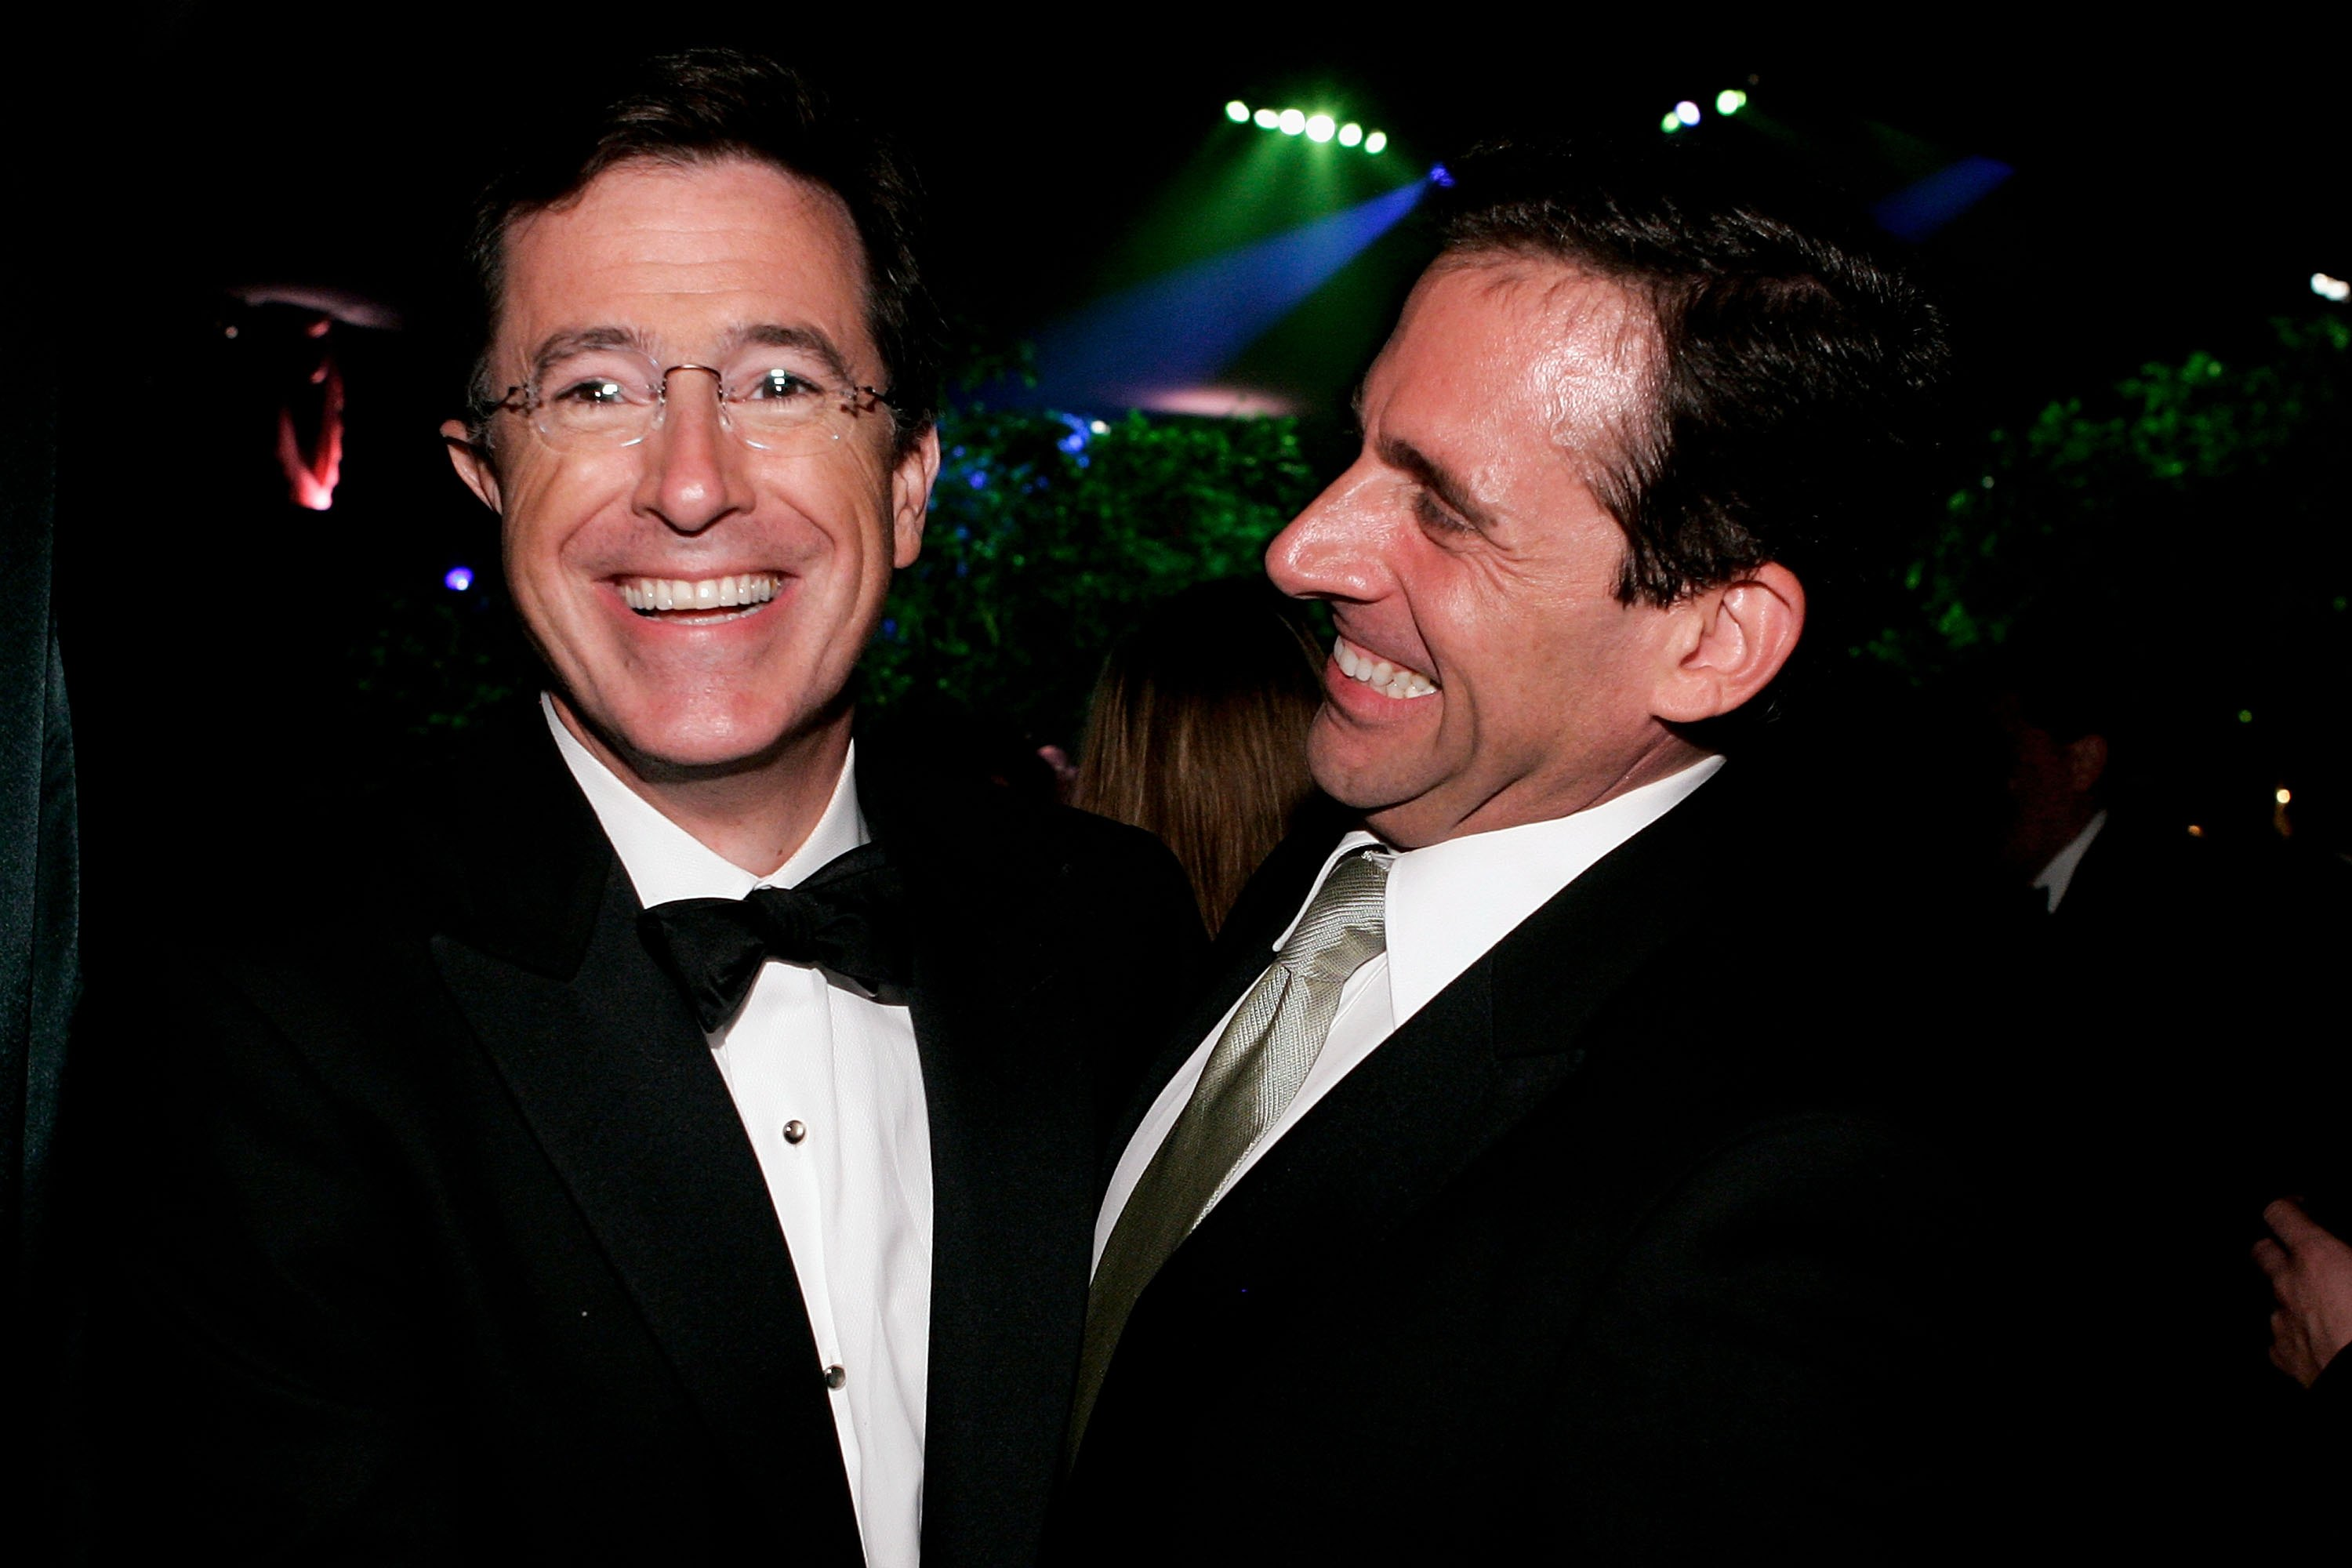 TV host Stephen Colbert and actor Steve Carell attends the Governor's Ball after the 58th Annual Primetime Emmy Awards at the Shrine Auditorium on August 27, 2006 in Los Angeles, California.